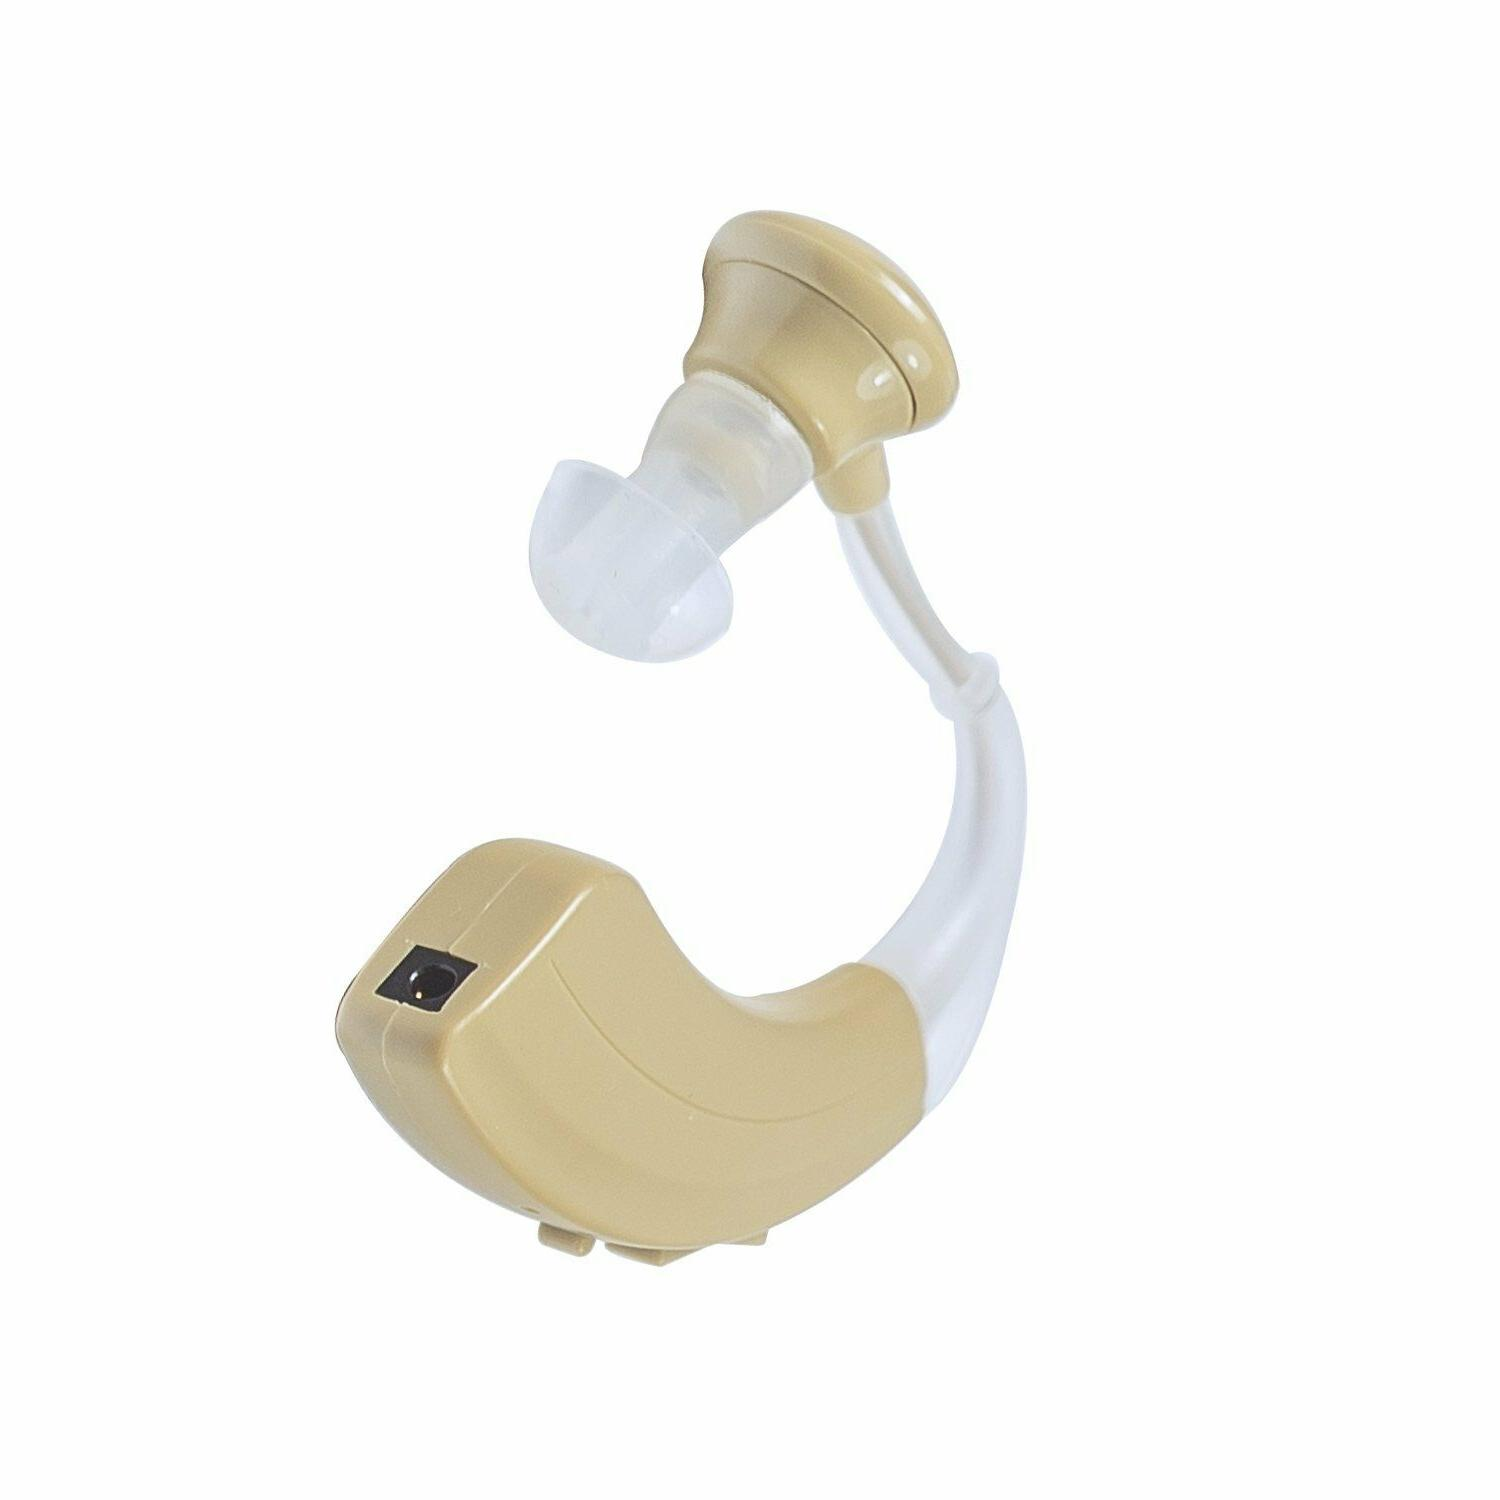 CLEARON Hearing Aid 500 Battery Cycles